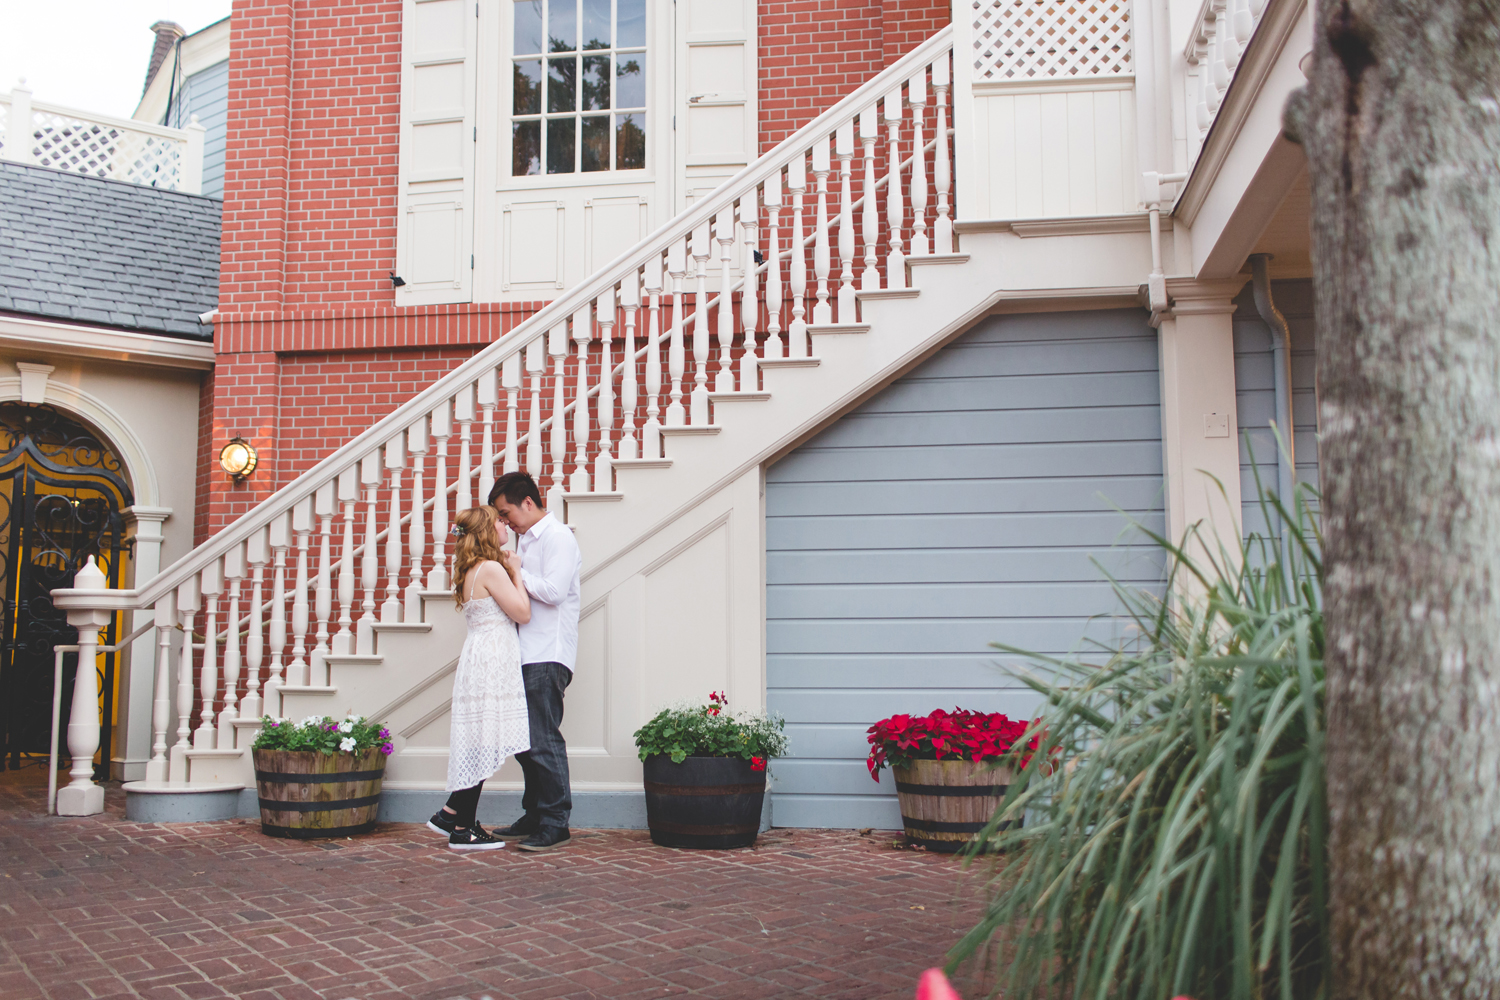 Disney Honeymoon session - Disney Engagement Photos - Disney Wedding Photographer - Destination Orlando Wedding Photographer - Jaime DiOrio (79).jpg